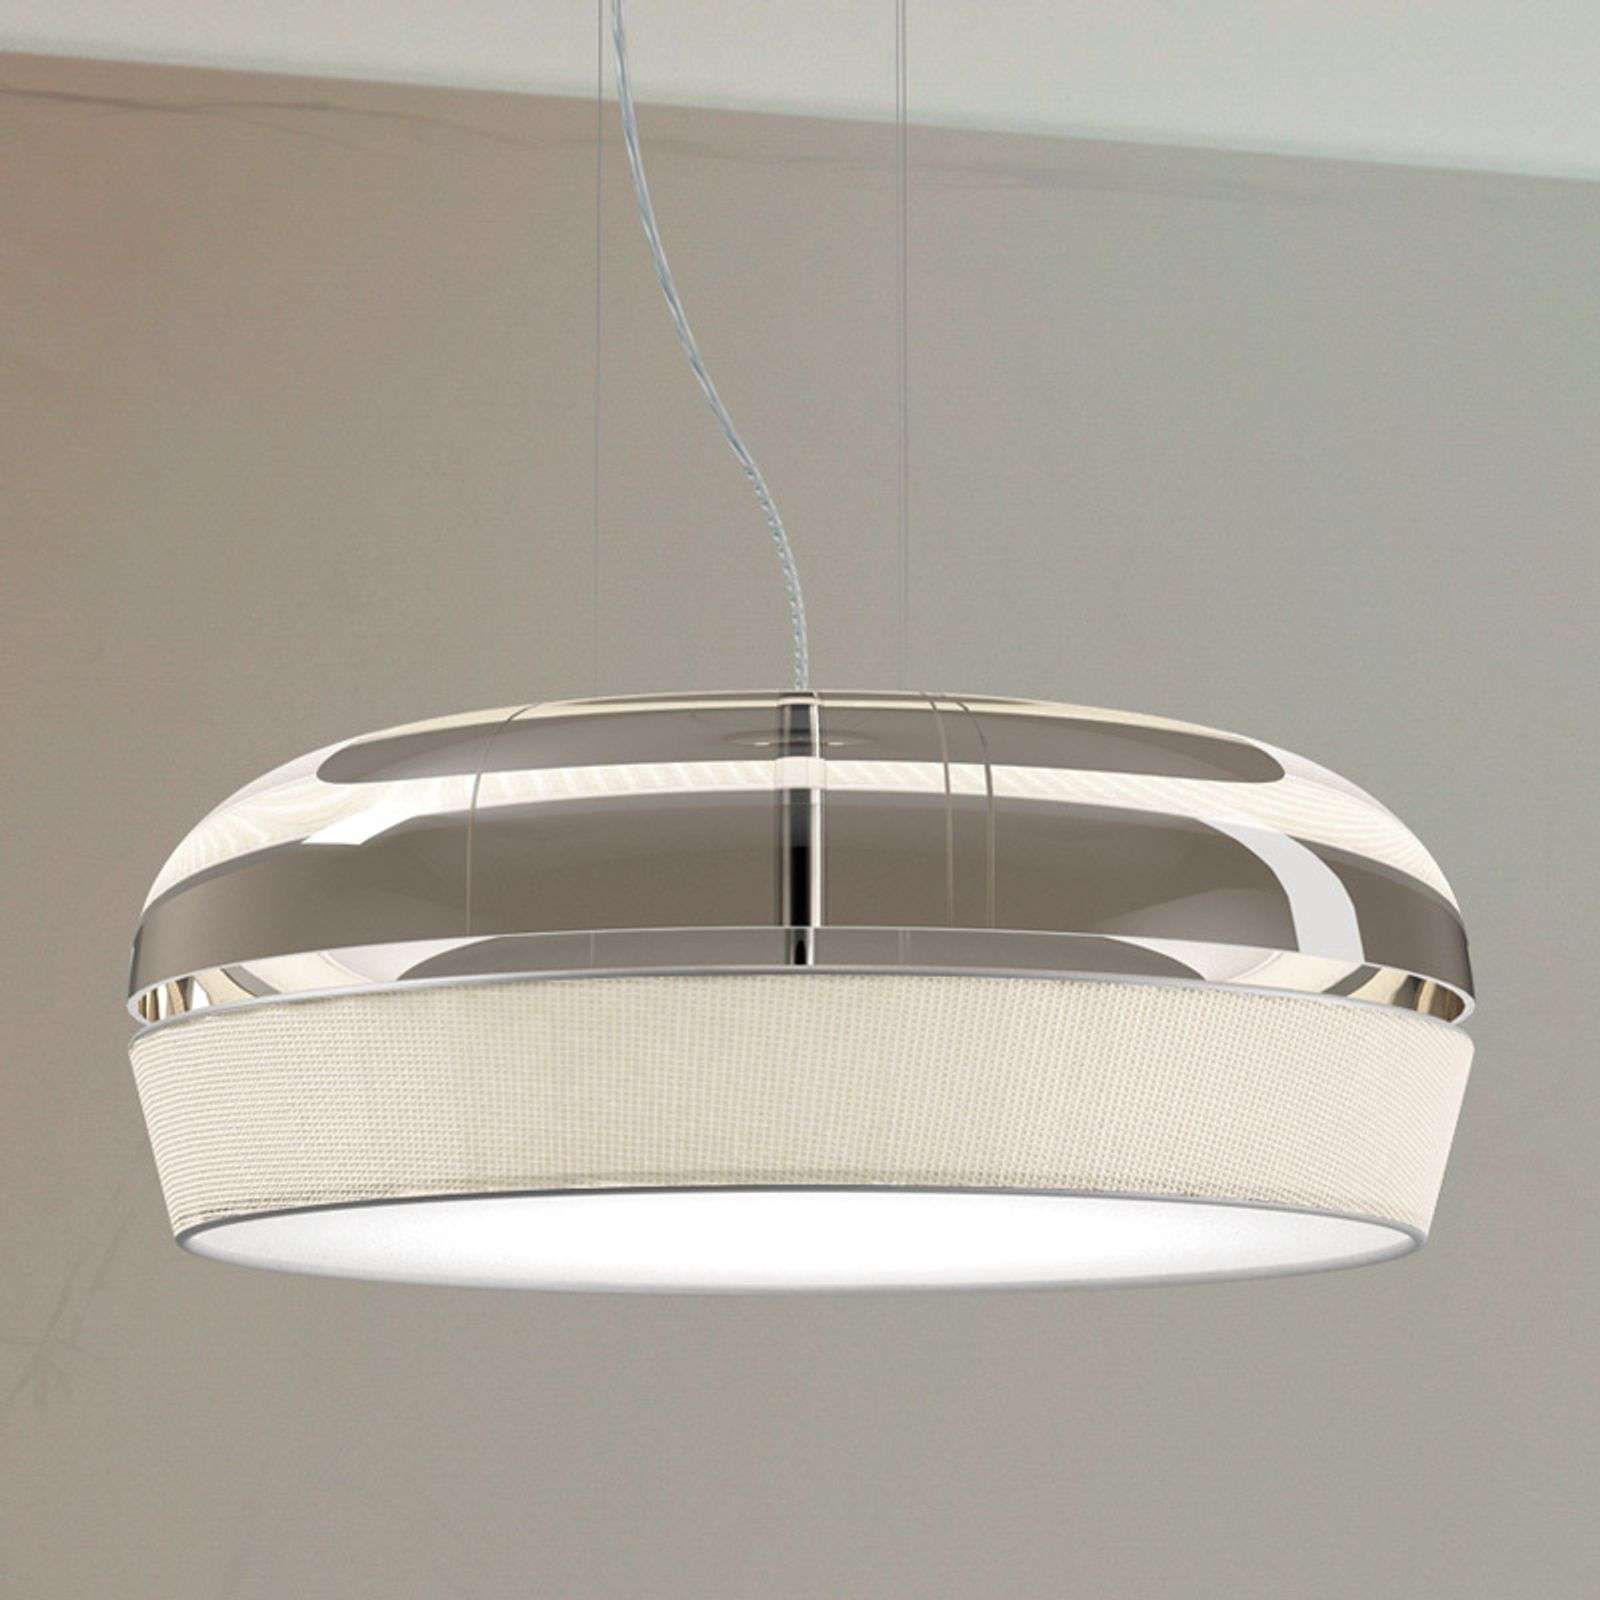 Elegante lámpara colgante LED Dome S50